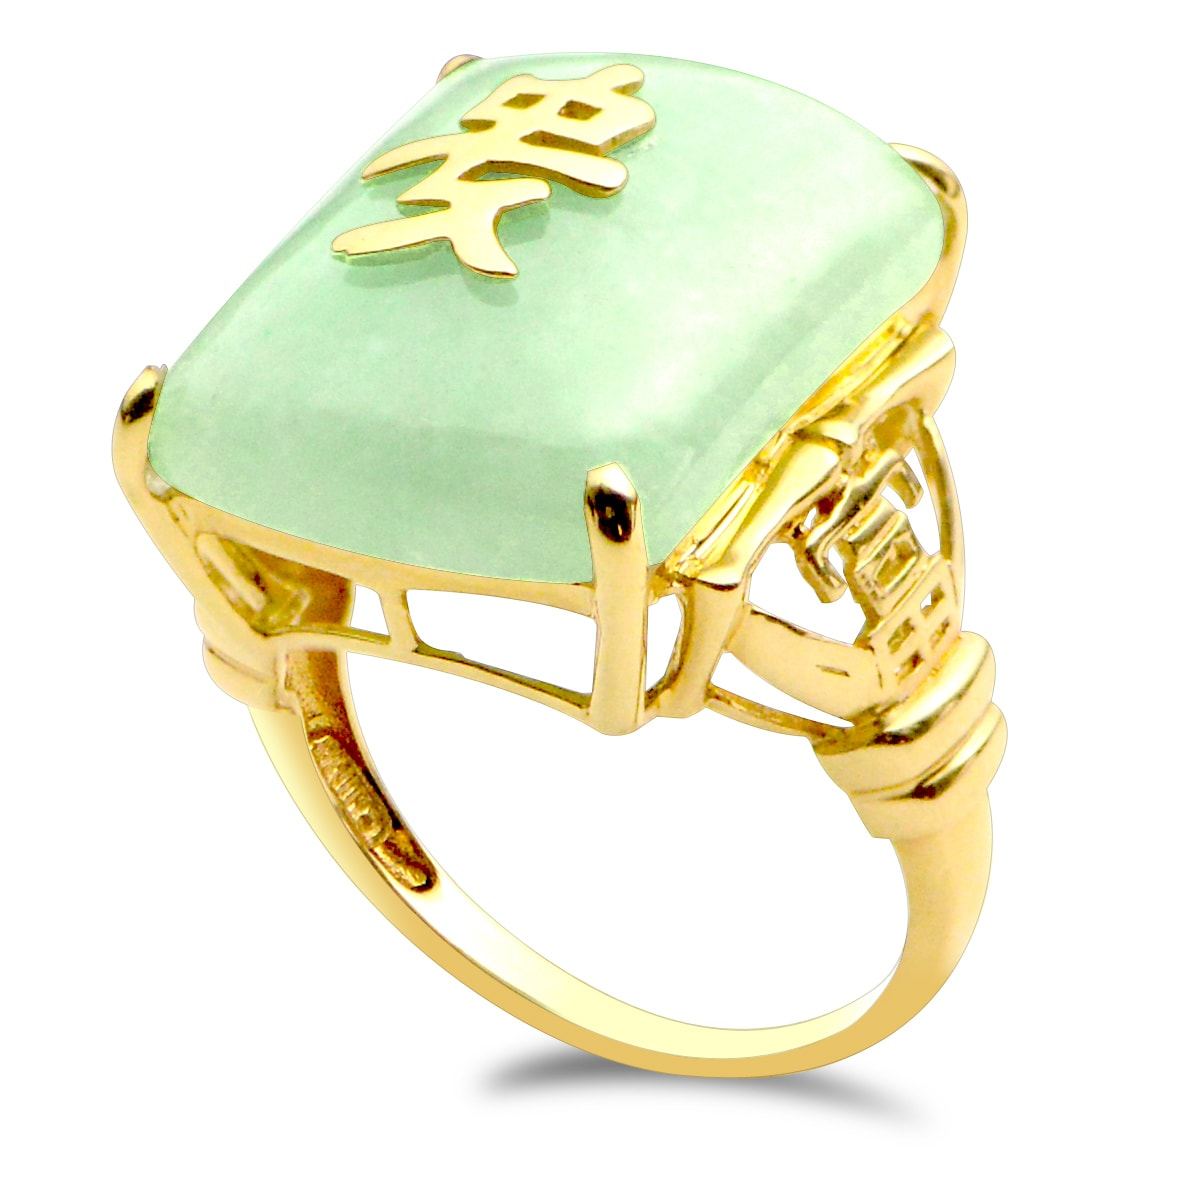 Gems for you 14k yellow gold green jade gold chinese symbol ring gems for you 14k yellow gold green jade gold chinese symbol ring free shipping today overstock 16088954 buycottarizona